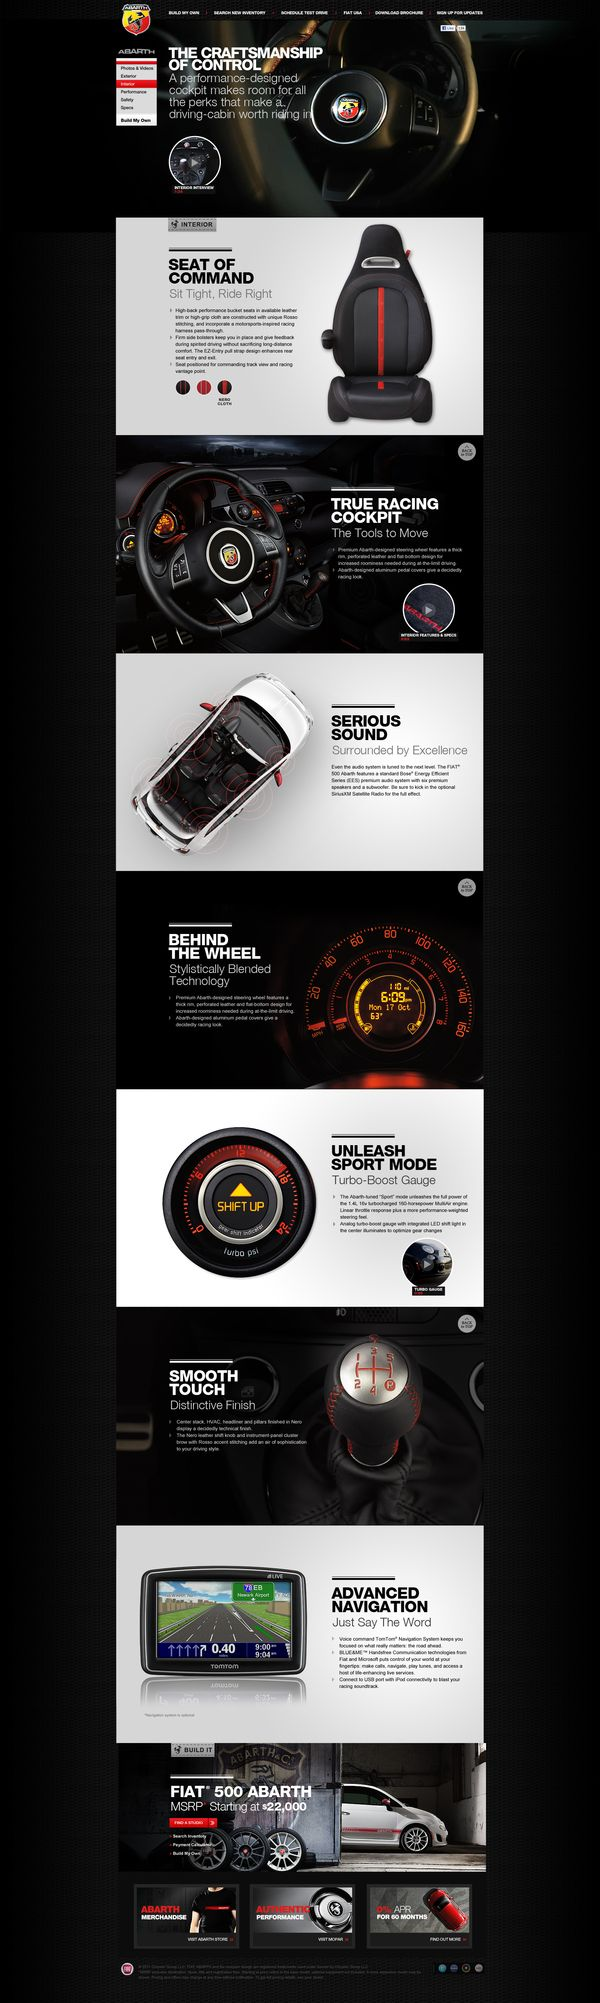 www.fiatusa.com/abarth, #it #web #design #layout #userinterface #website #webdesign <<< repinned by www.BlickeDeeler.de Follow us on www.facebook.com/BlickeDeeler